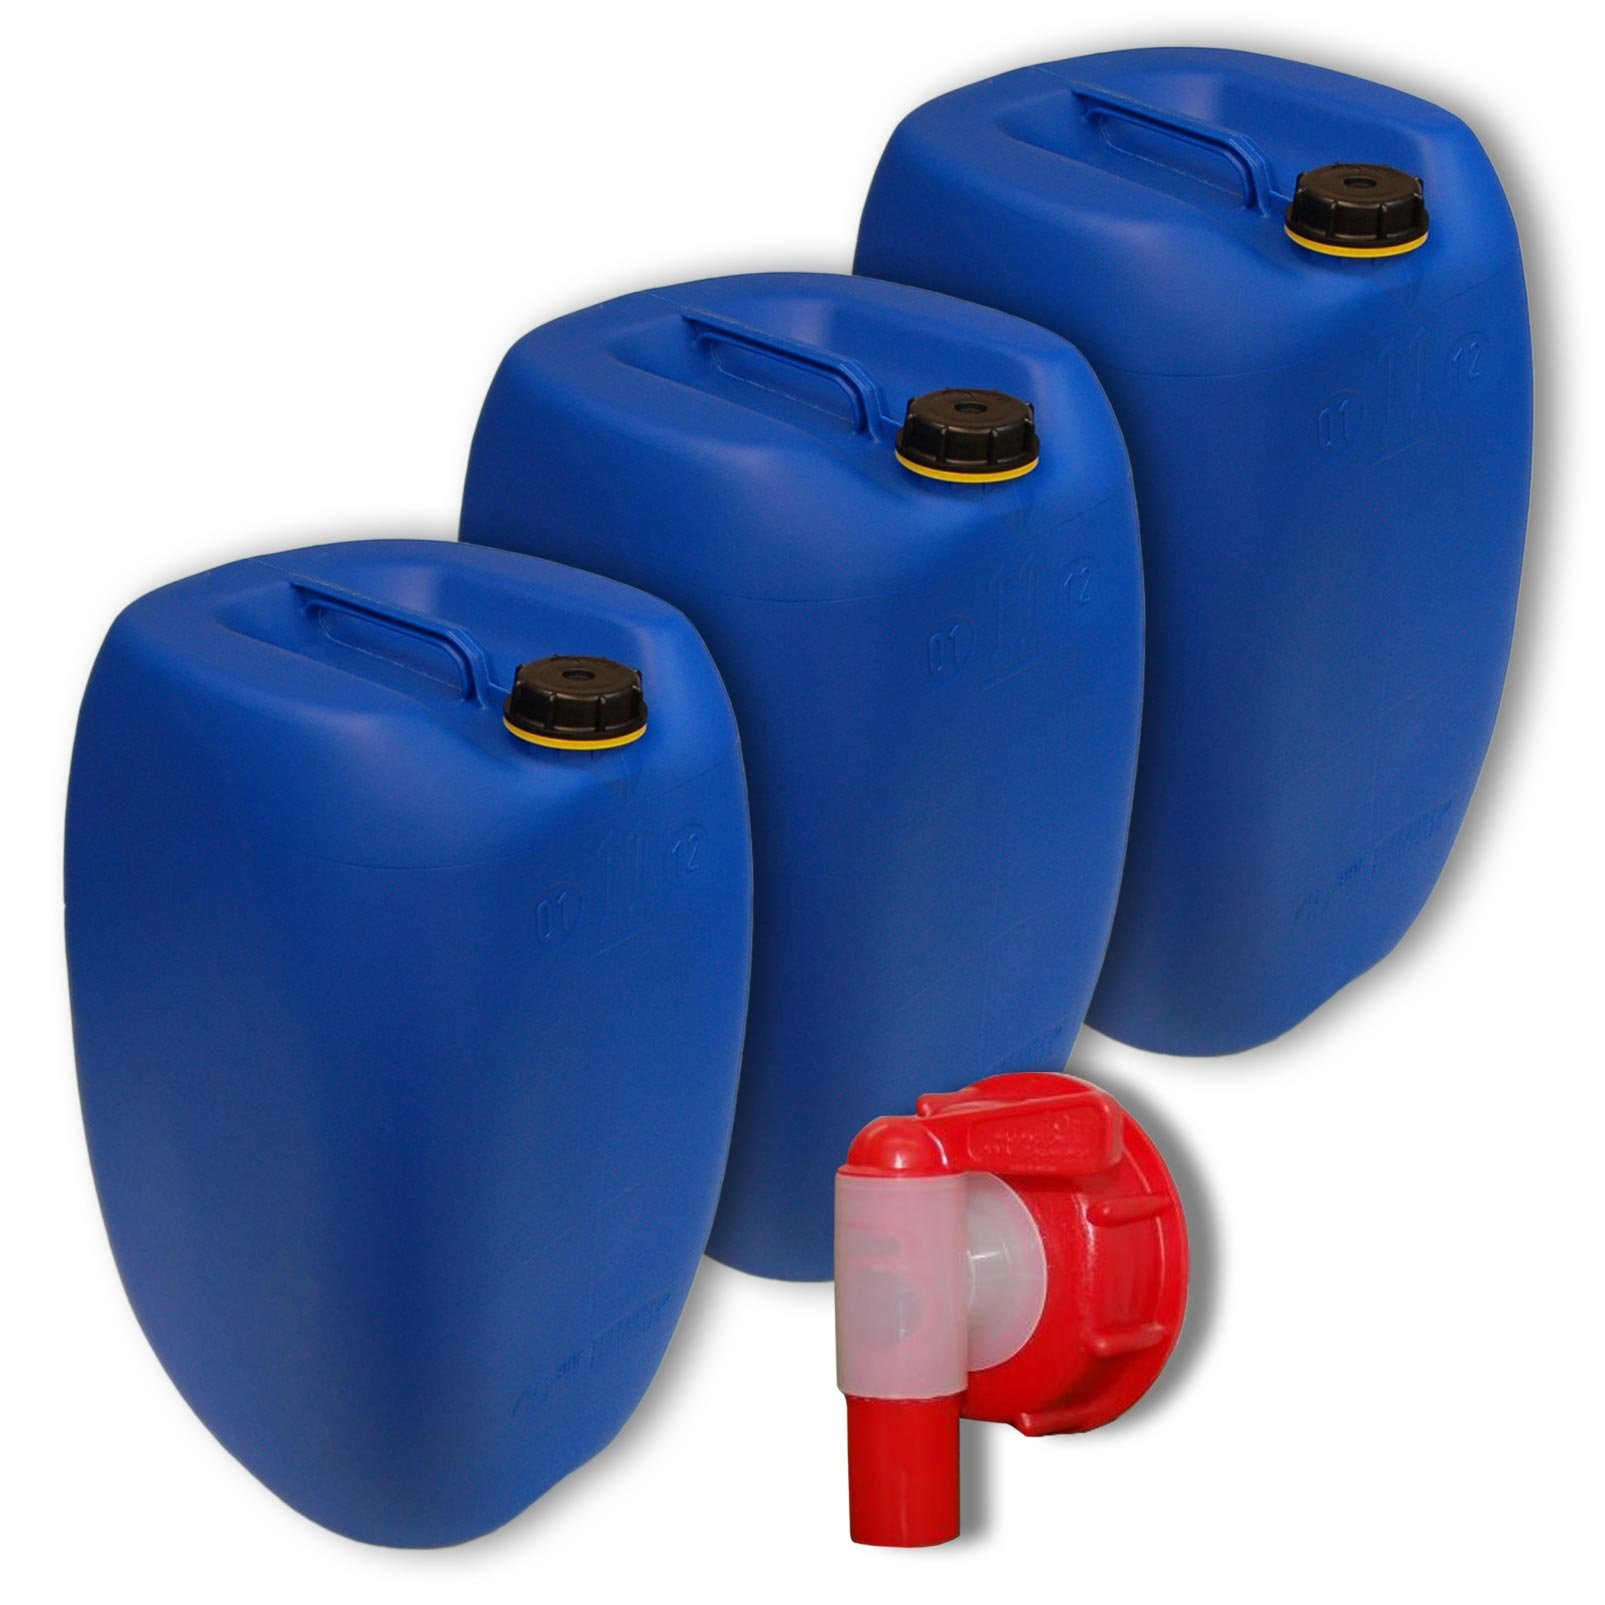 Lot of 3 plastic jerricans 60 L, water container, Blue, DIN 61 + 1 tap (22250x3+22010)